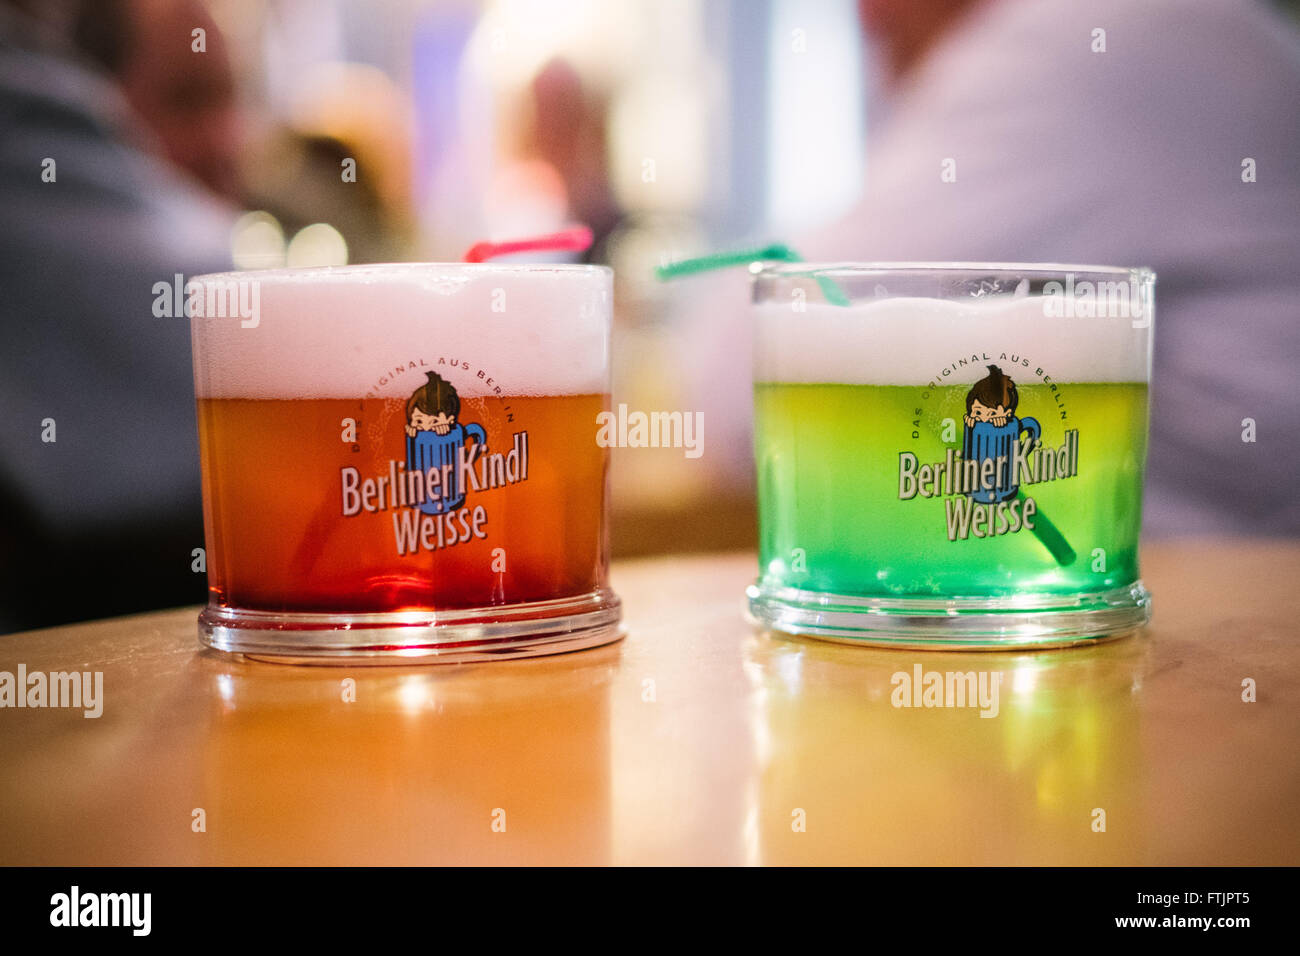 the berlin cult beer berliner kindl weisse with the flavor red stock photo royalty free image. Black Bedroom Furniture Sets. Home Design Ideas